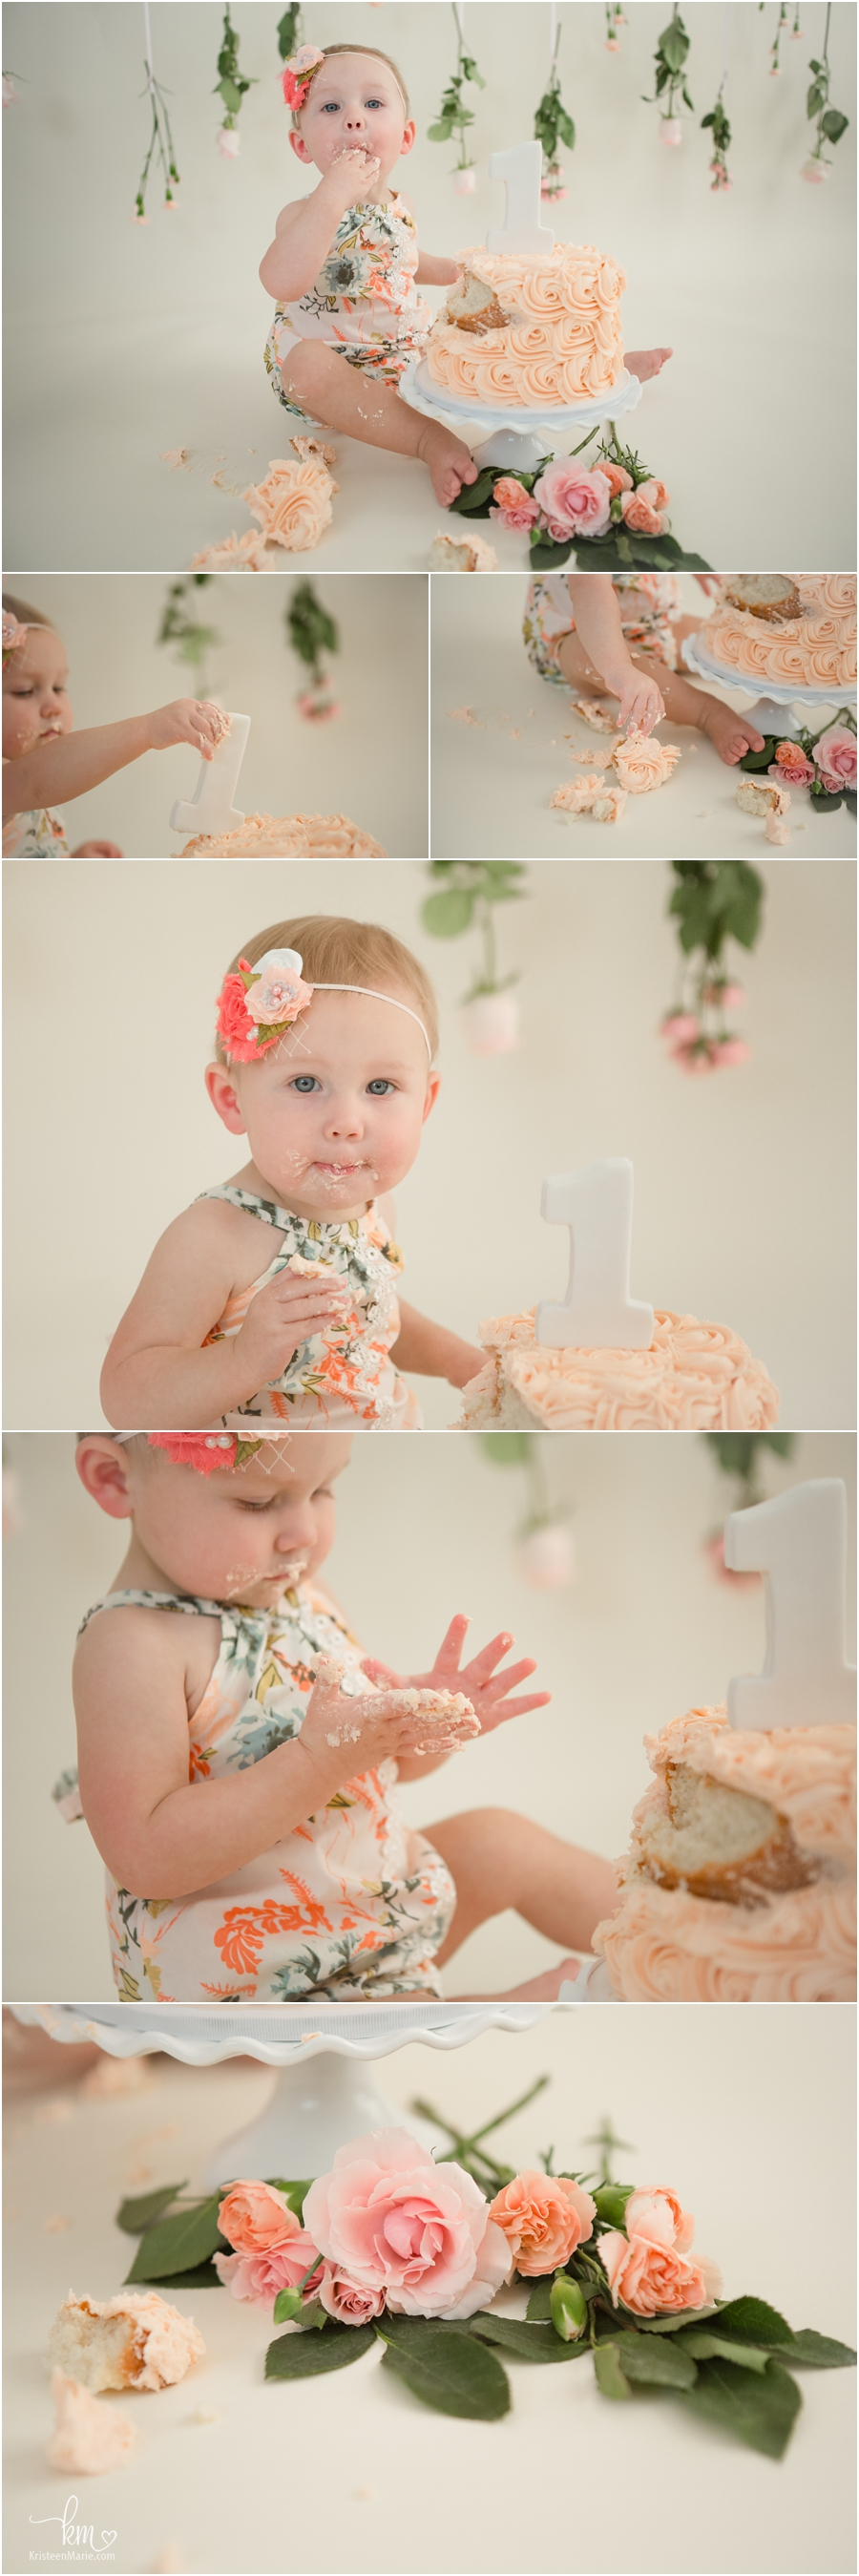 first birthday flower themed cake smash session for baby's first birthday